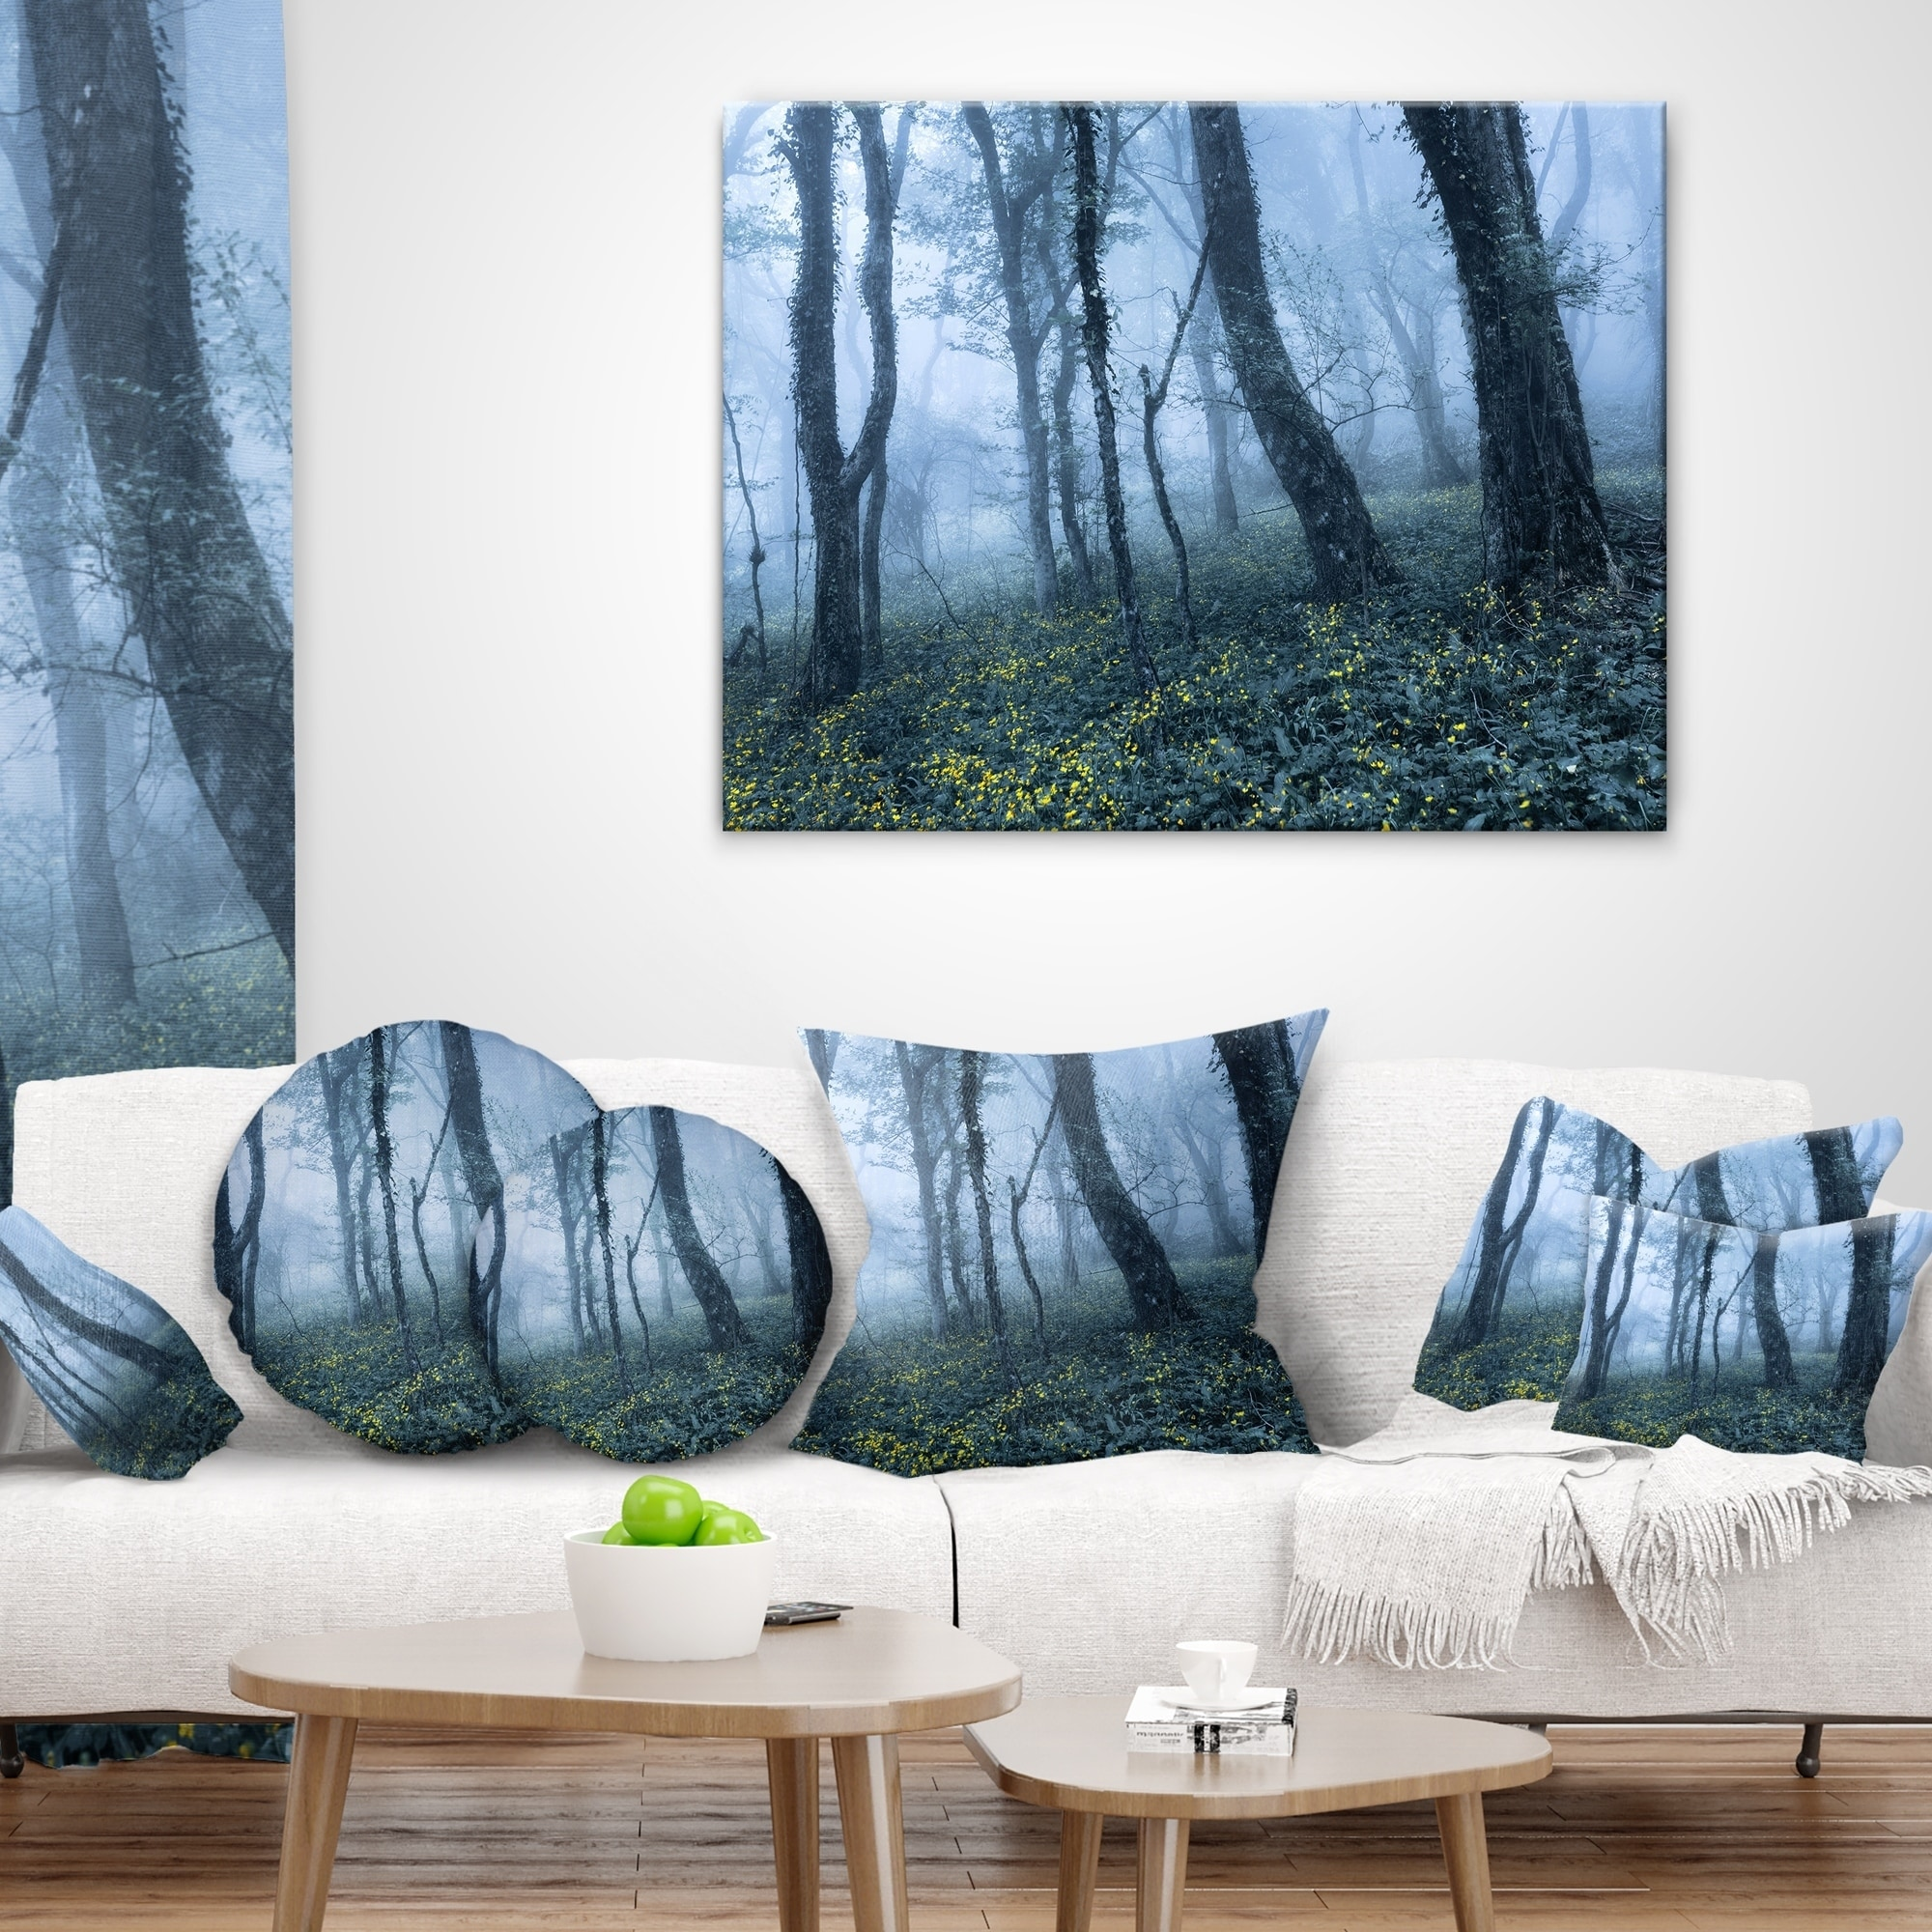 Designart CU8453-26-26 Trees in Foggy Spring Forest Landscape Photography Cushion Cover for Living Room Sofa Throw Pillow 26 in x 26 in in